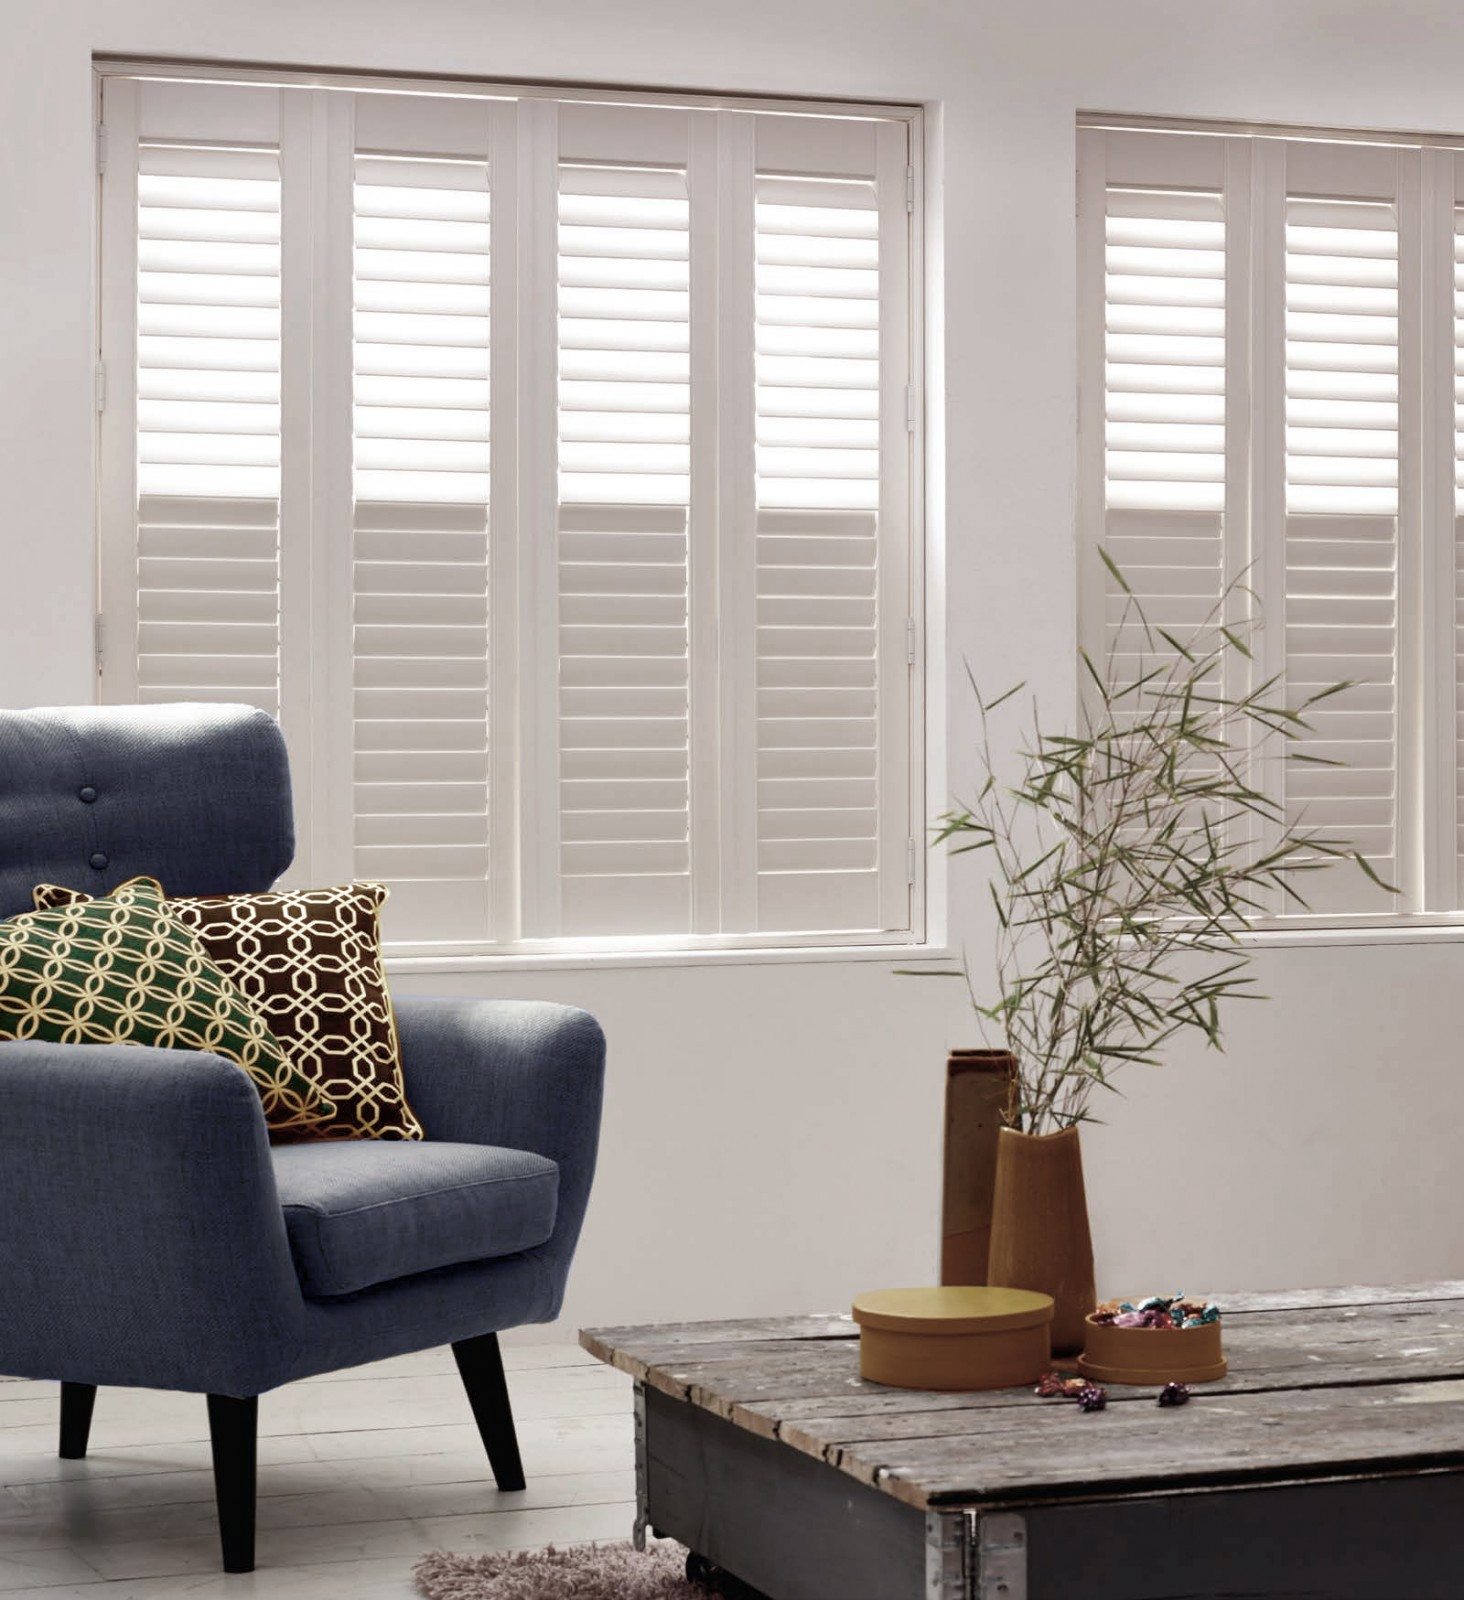 How To Create A Scandi Style Room With Wooden Shutters